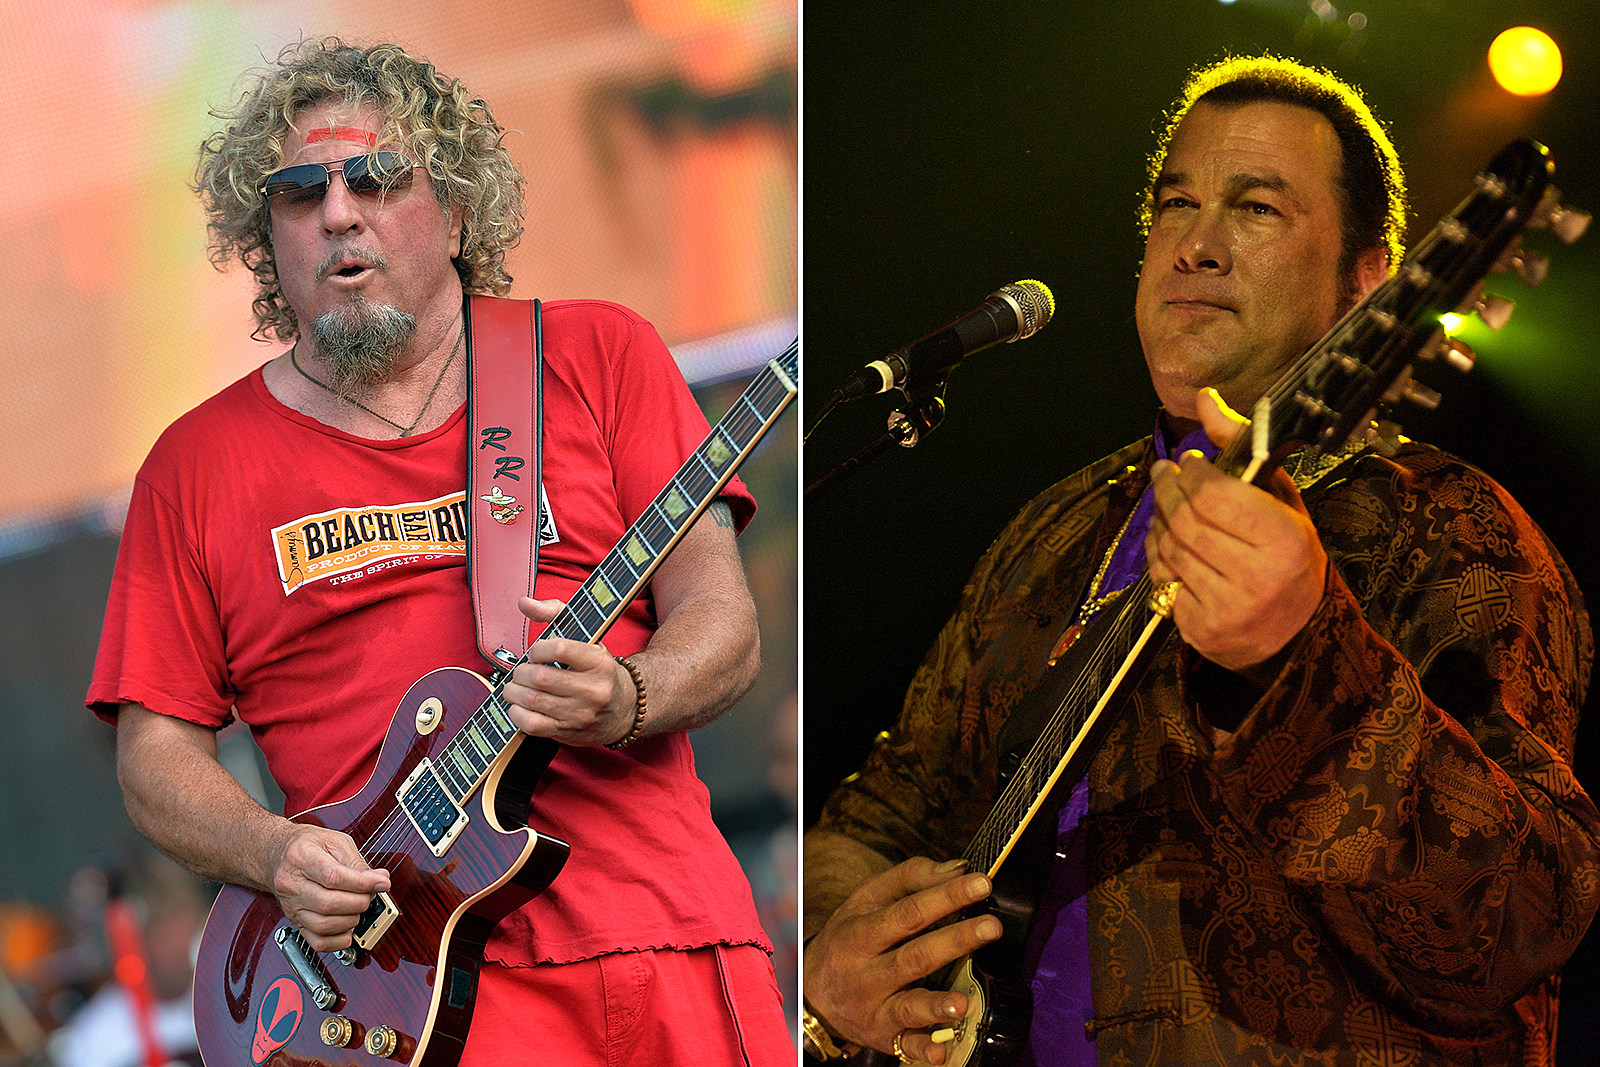 When Steven Seagal Opened for Sammy Hagar and Made $1,000